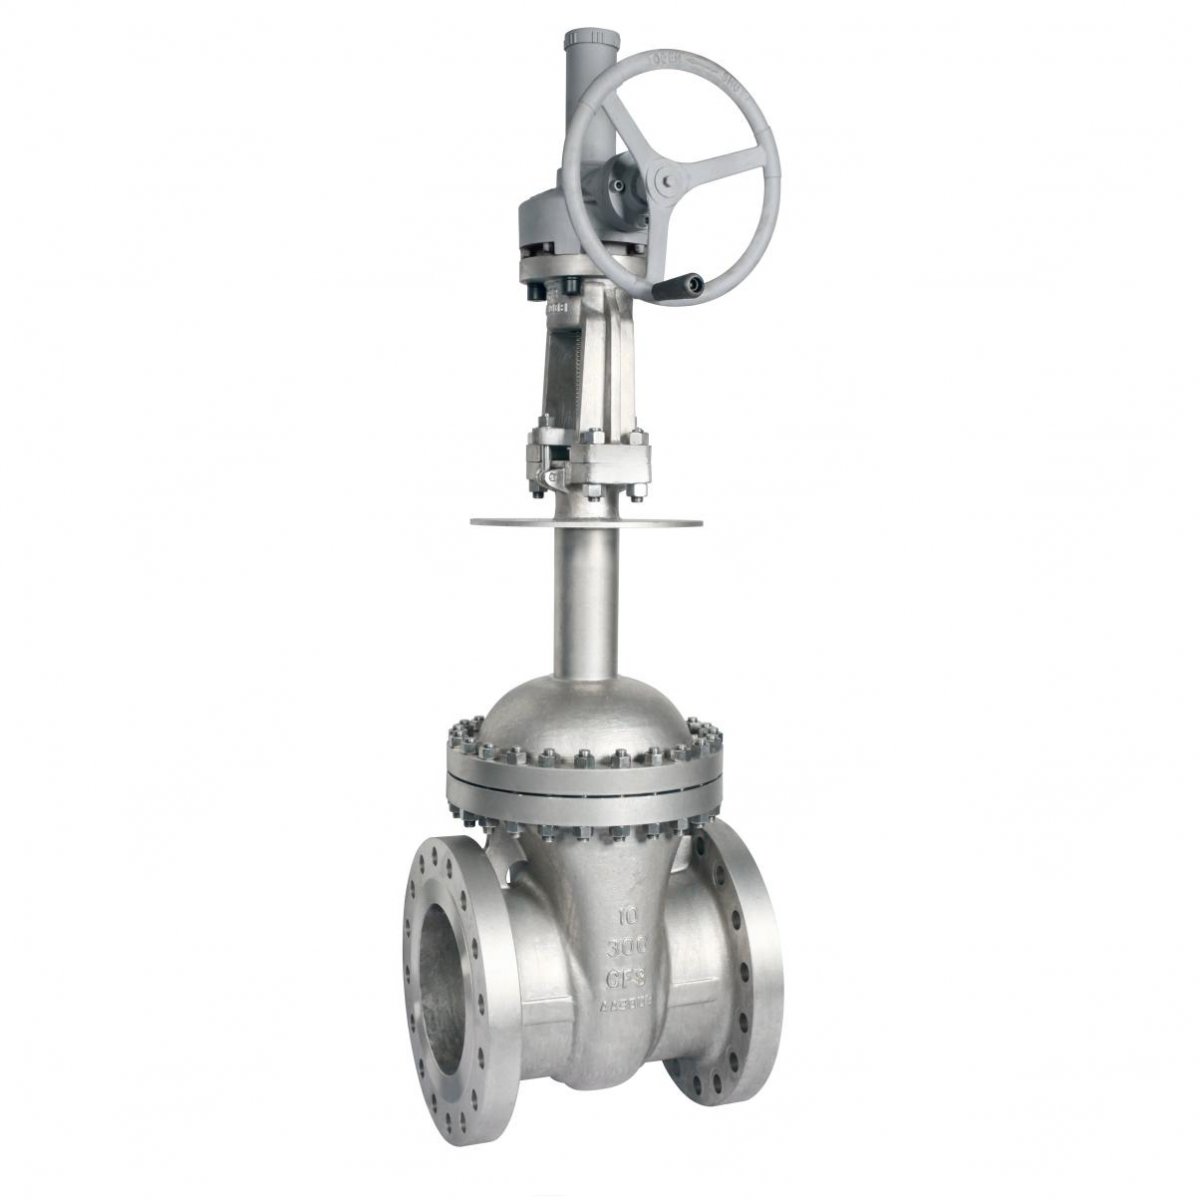 Cast Steel Cryogenic Gate Valves, CF8, DN250, PN50, Extended Bonnet